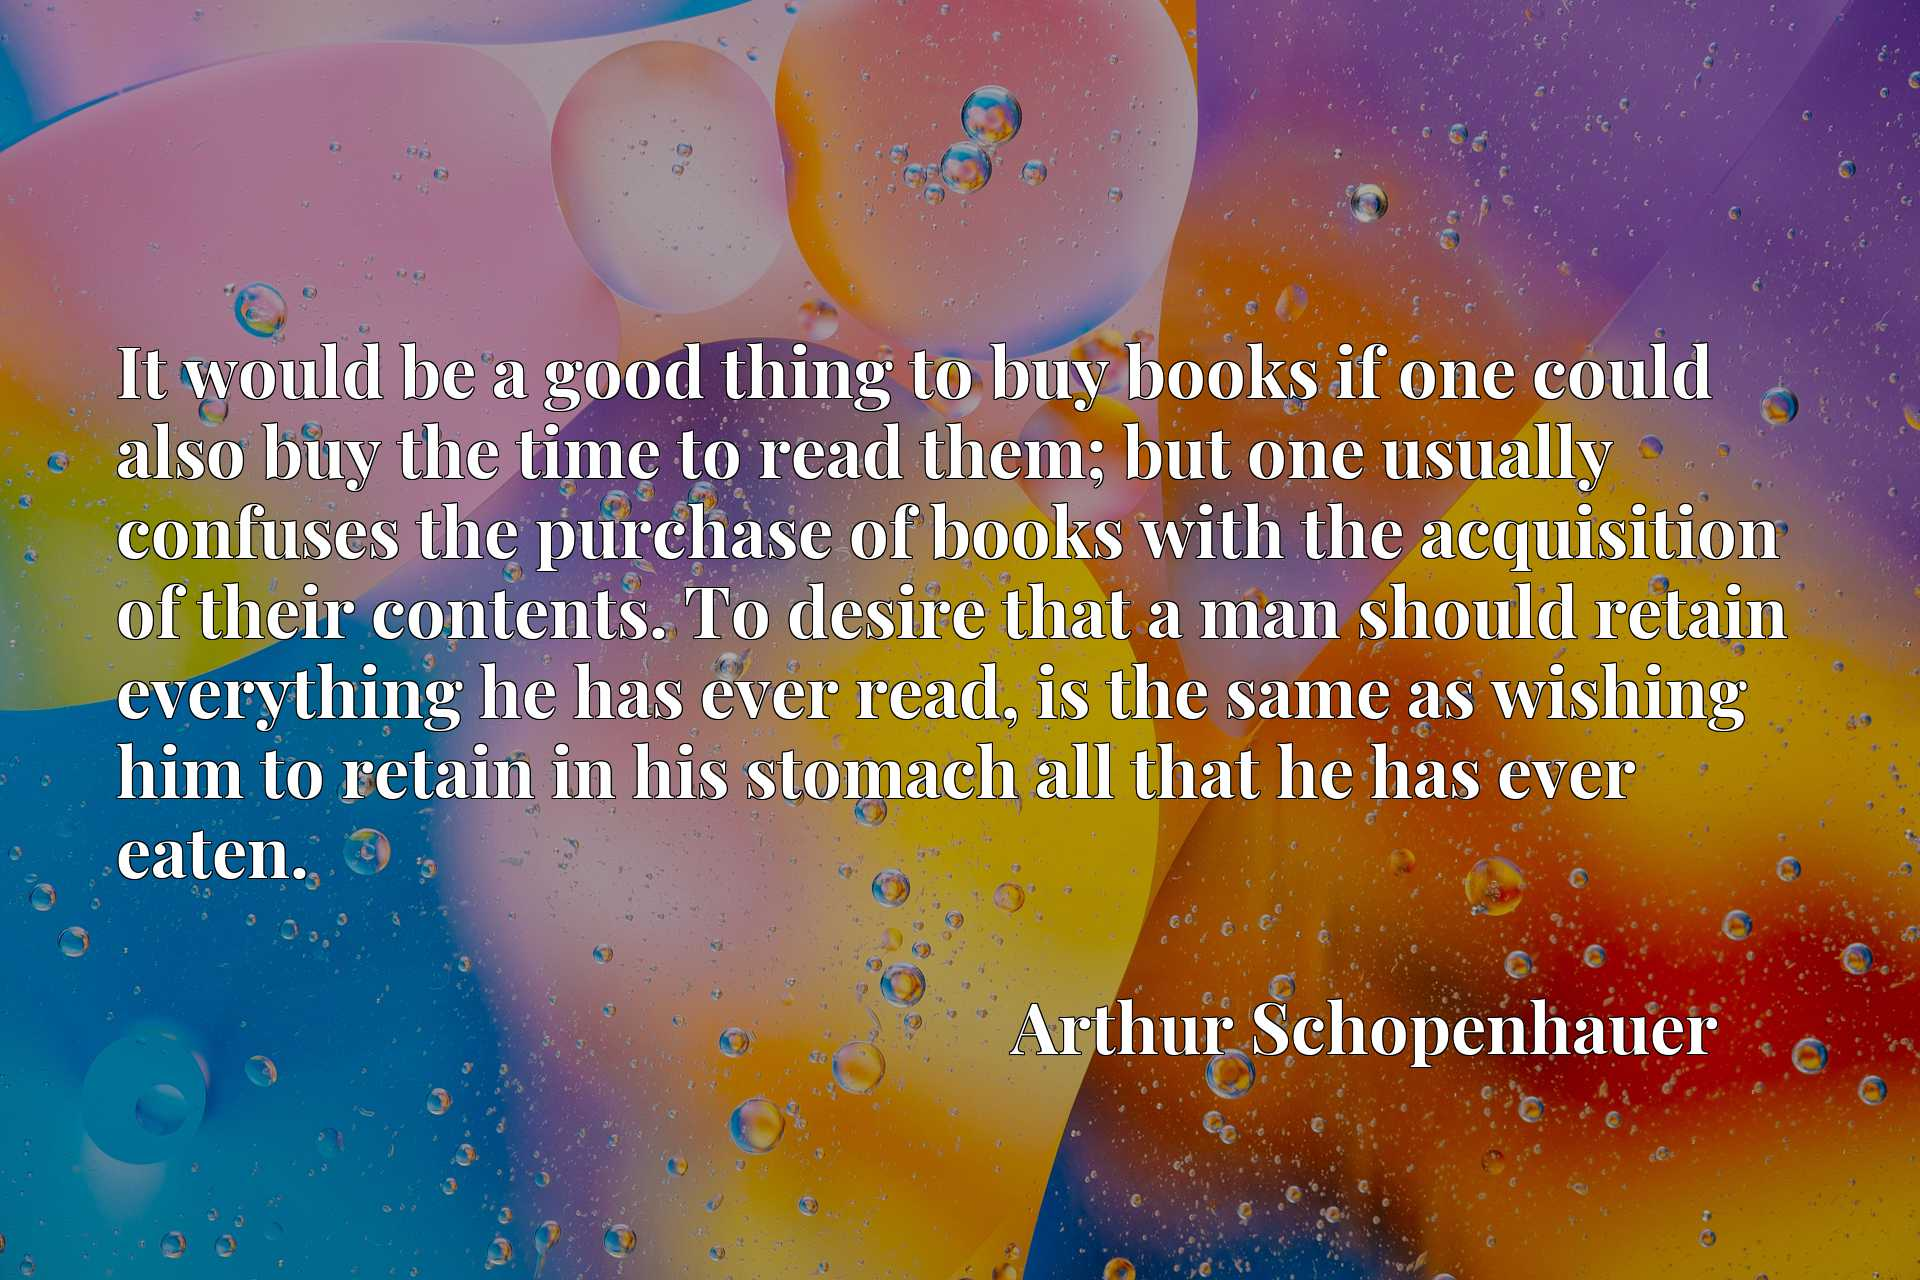 It would be a good thing to buy books if one could also buy the time to read them; but one usually confuses the purchase of books with the acquisition of their contents. To desire that a man should retain everything he has ever read, is the same as wishing him to retain in his stomach all that he has ever eaten.